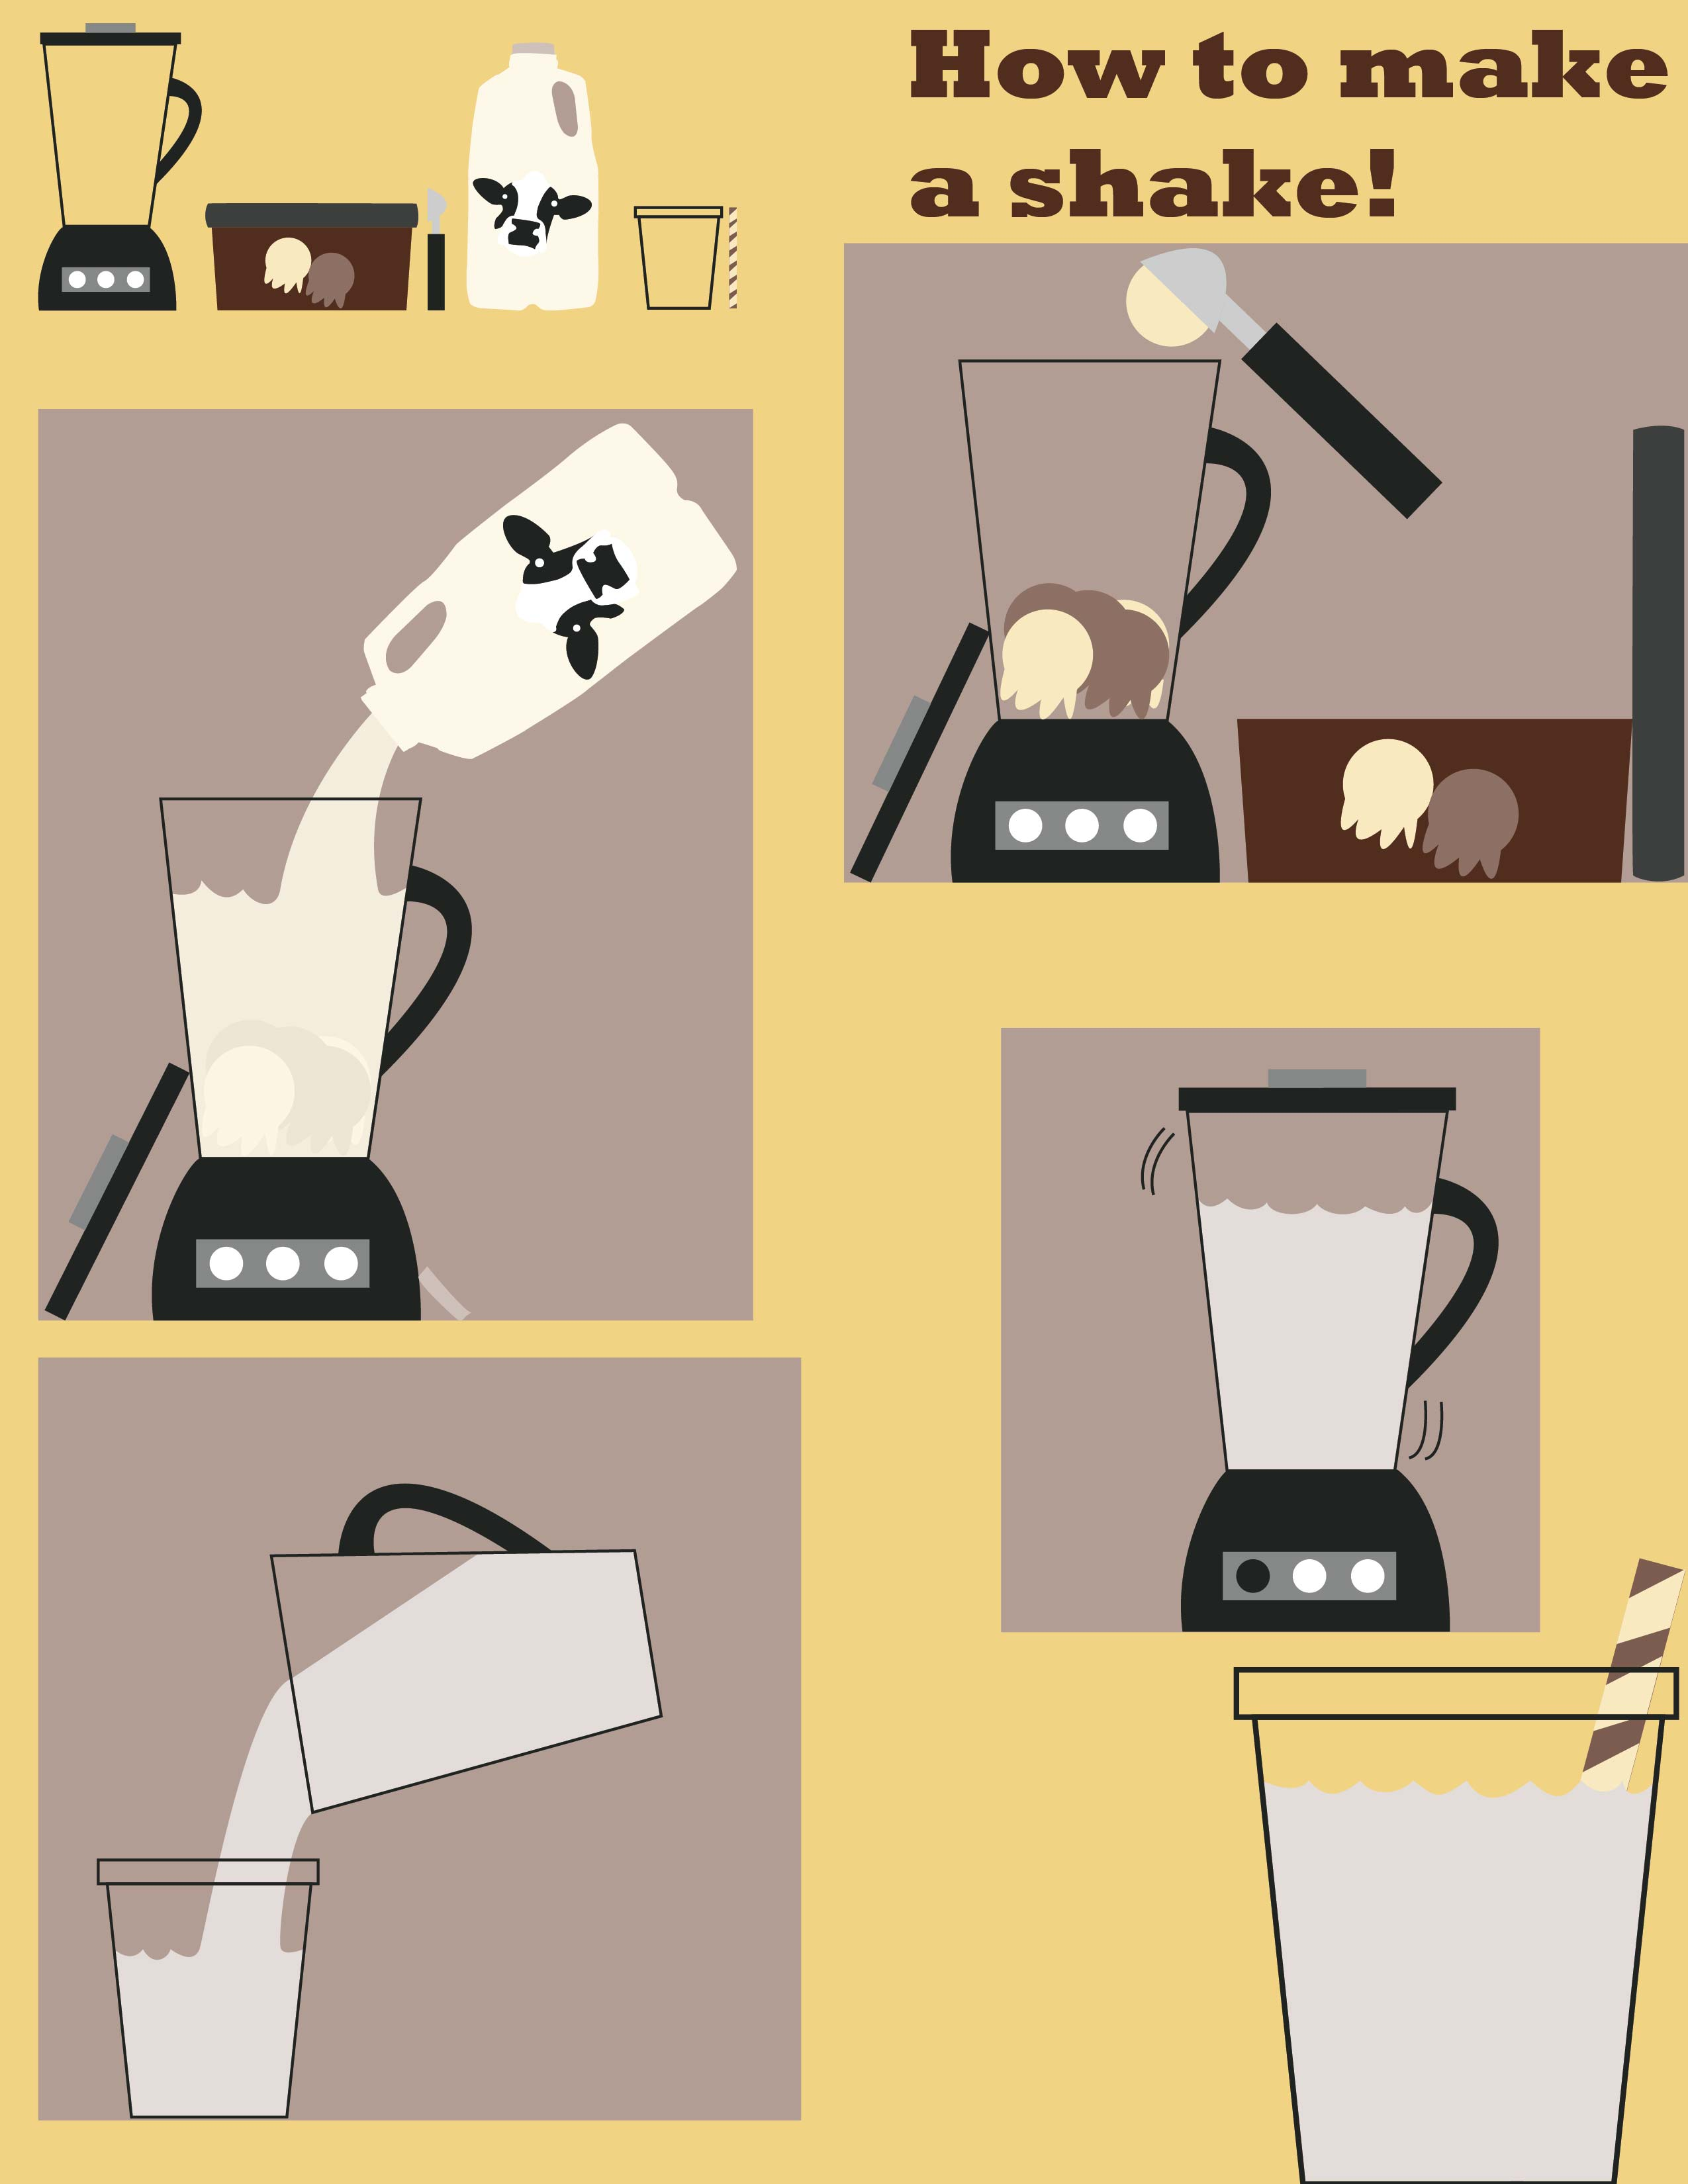 An illustrated guide on how to make a shake.